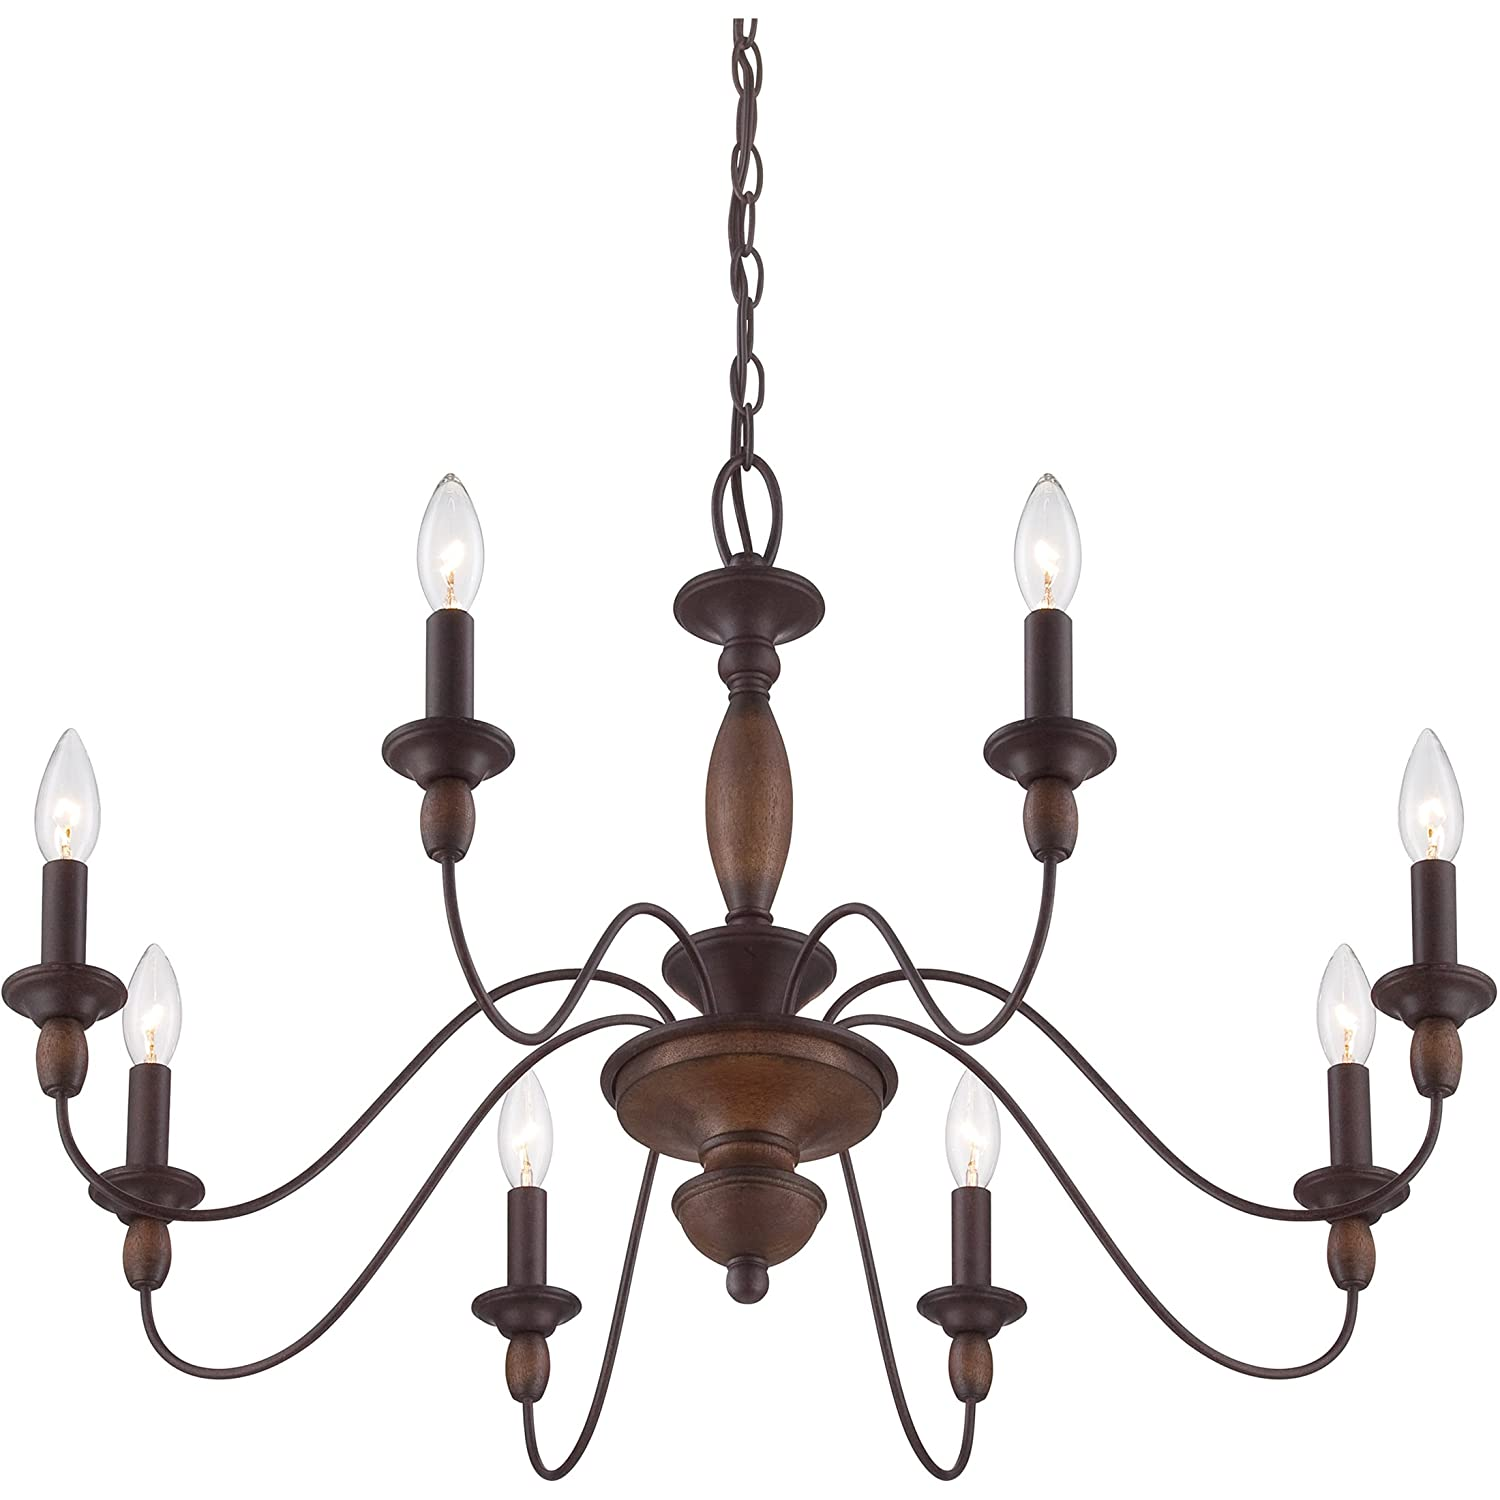 france tuscan iron spanish curl french vintage layered antique dsc the old belgium belgian two big chandelier tier product spain